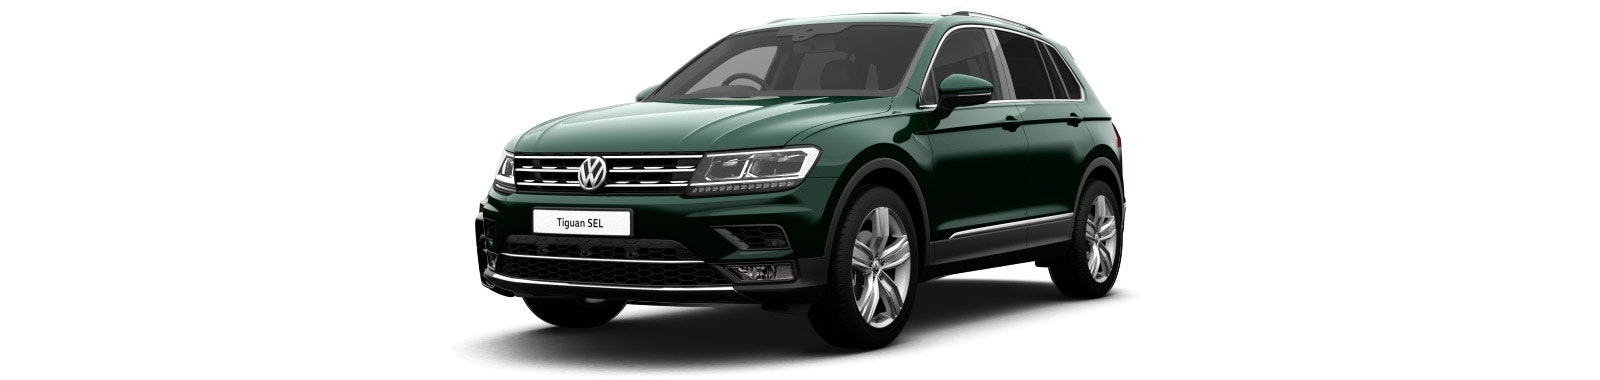 Moss Green VW Tiguan